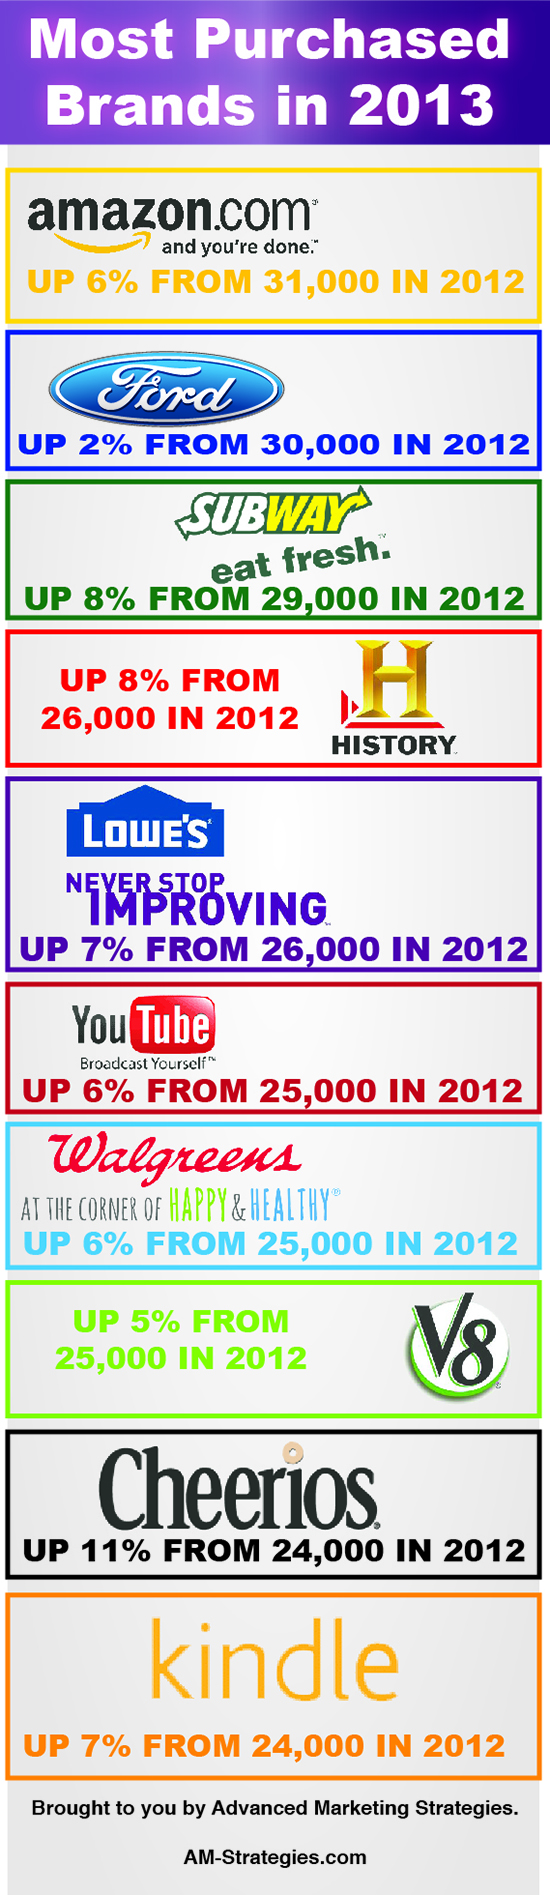 2013 Most Purchased Brands-Infographic